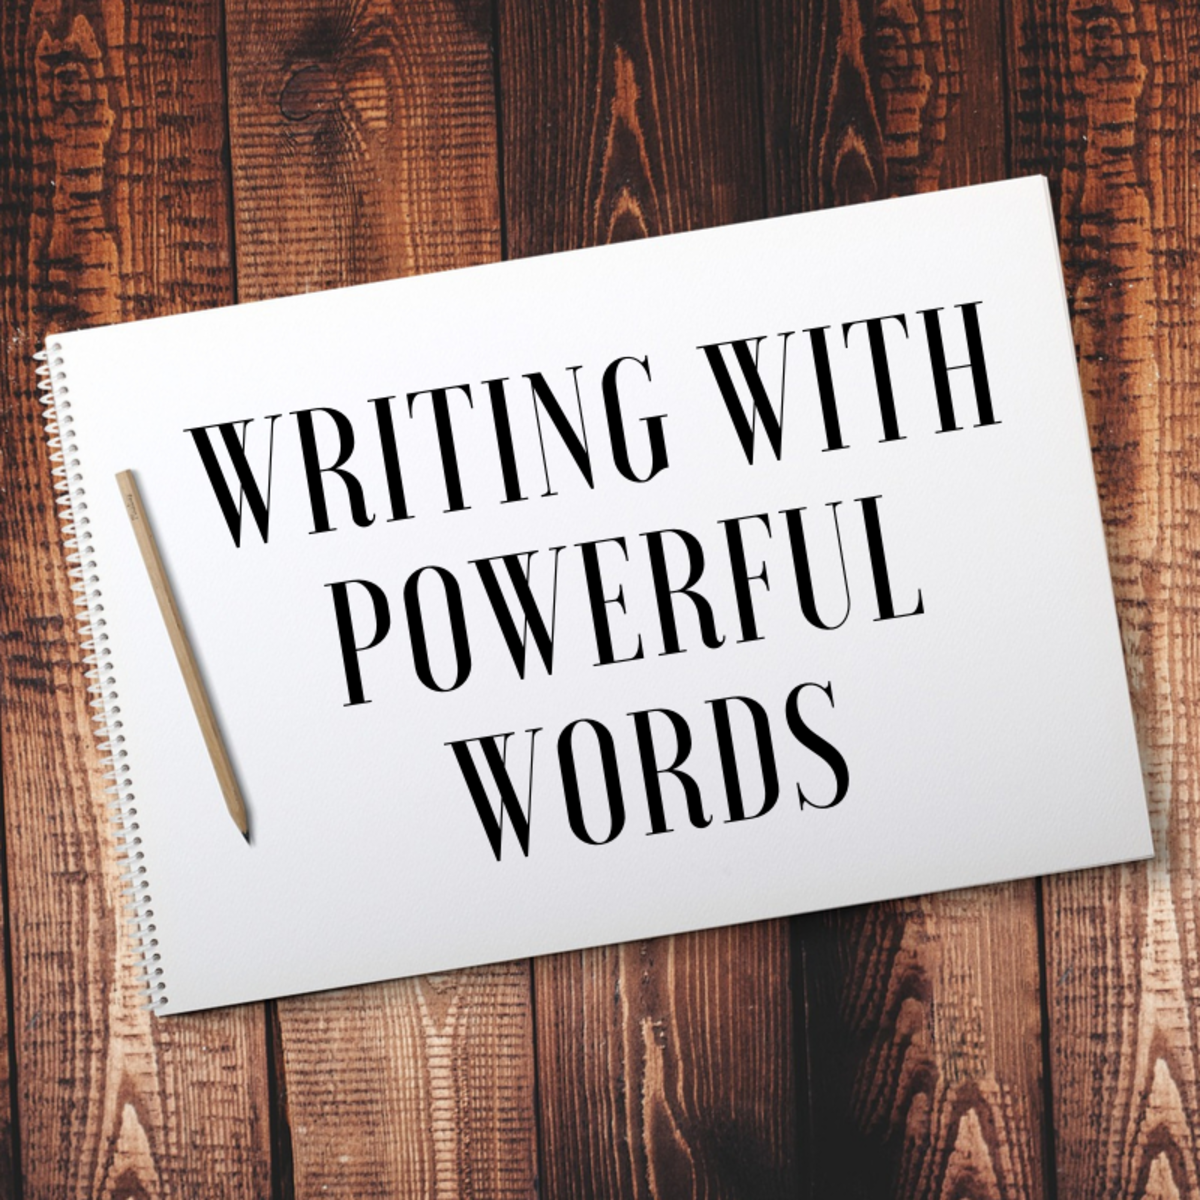 This article will provide numerous tips and examples to help you improve the powerful effects of your writing.